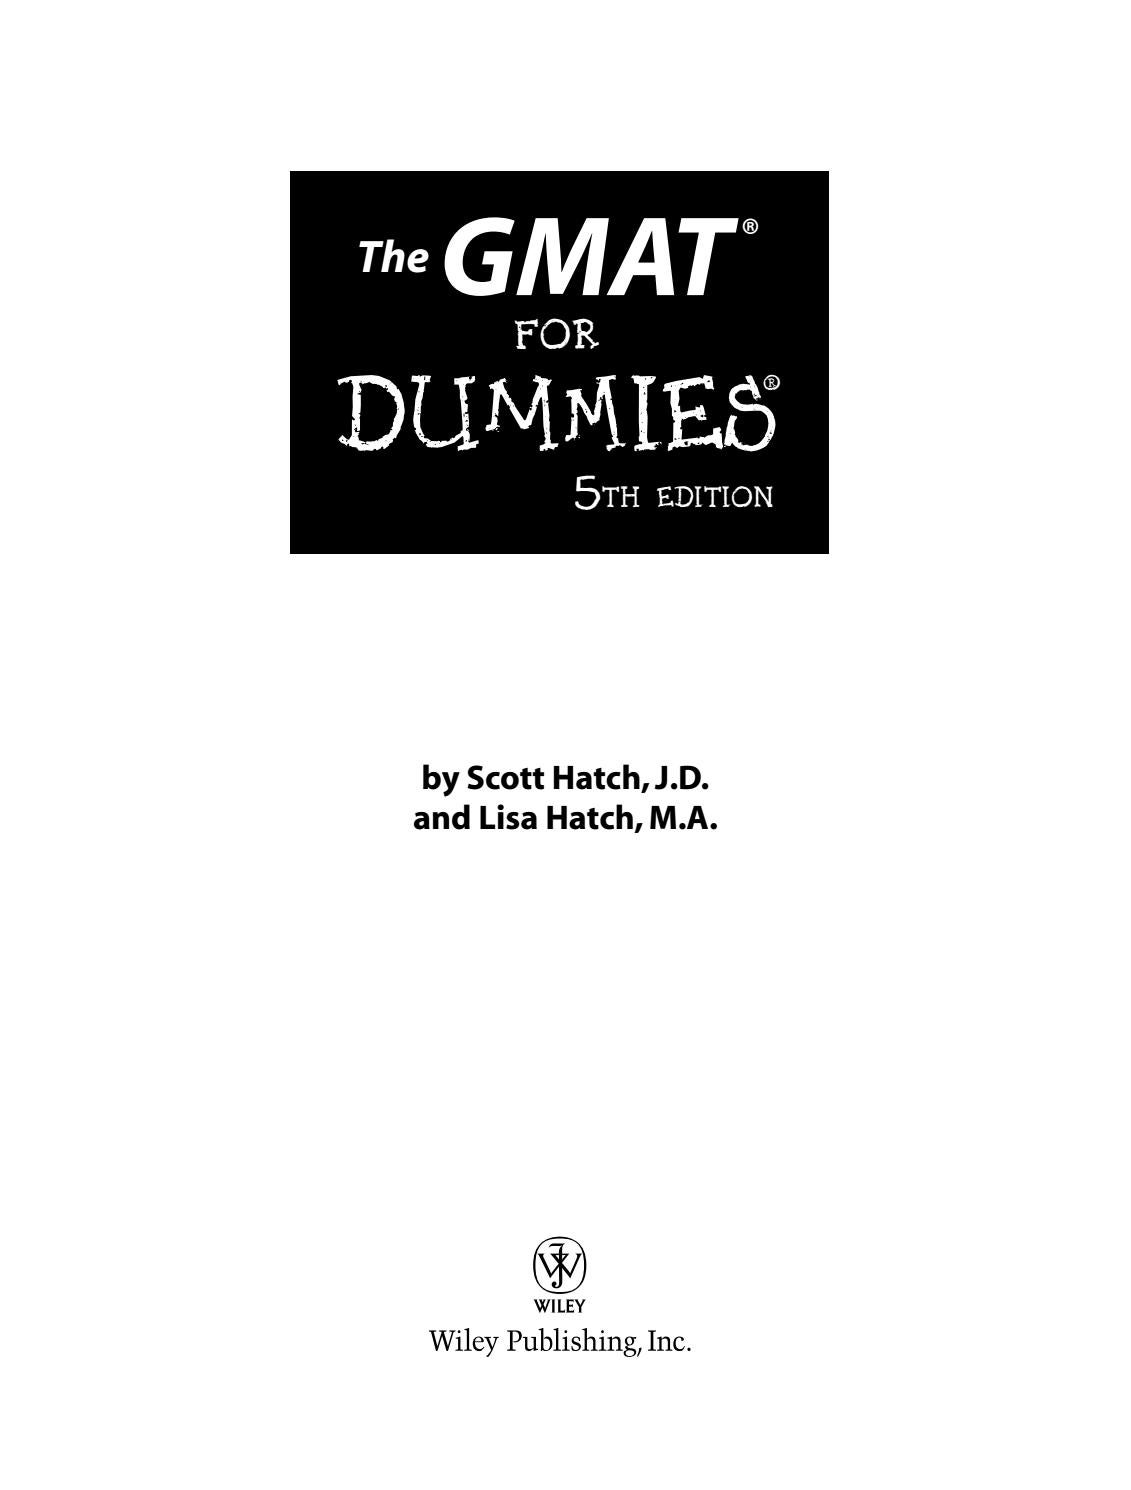 The gmat for dummies 5th by serpzen - issuu